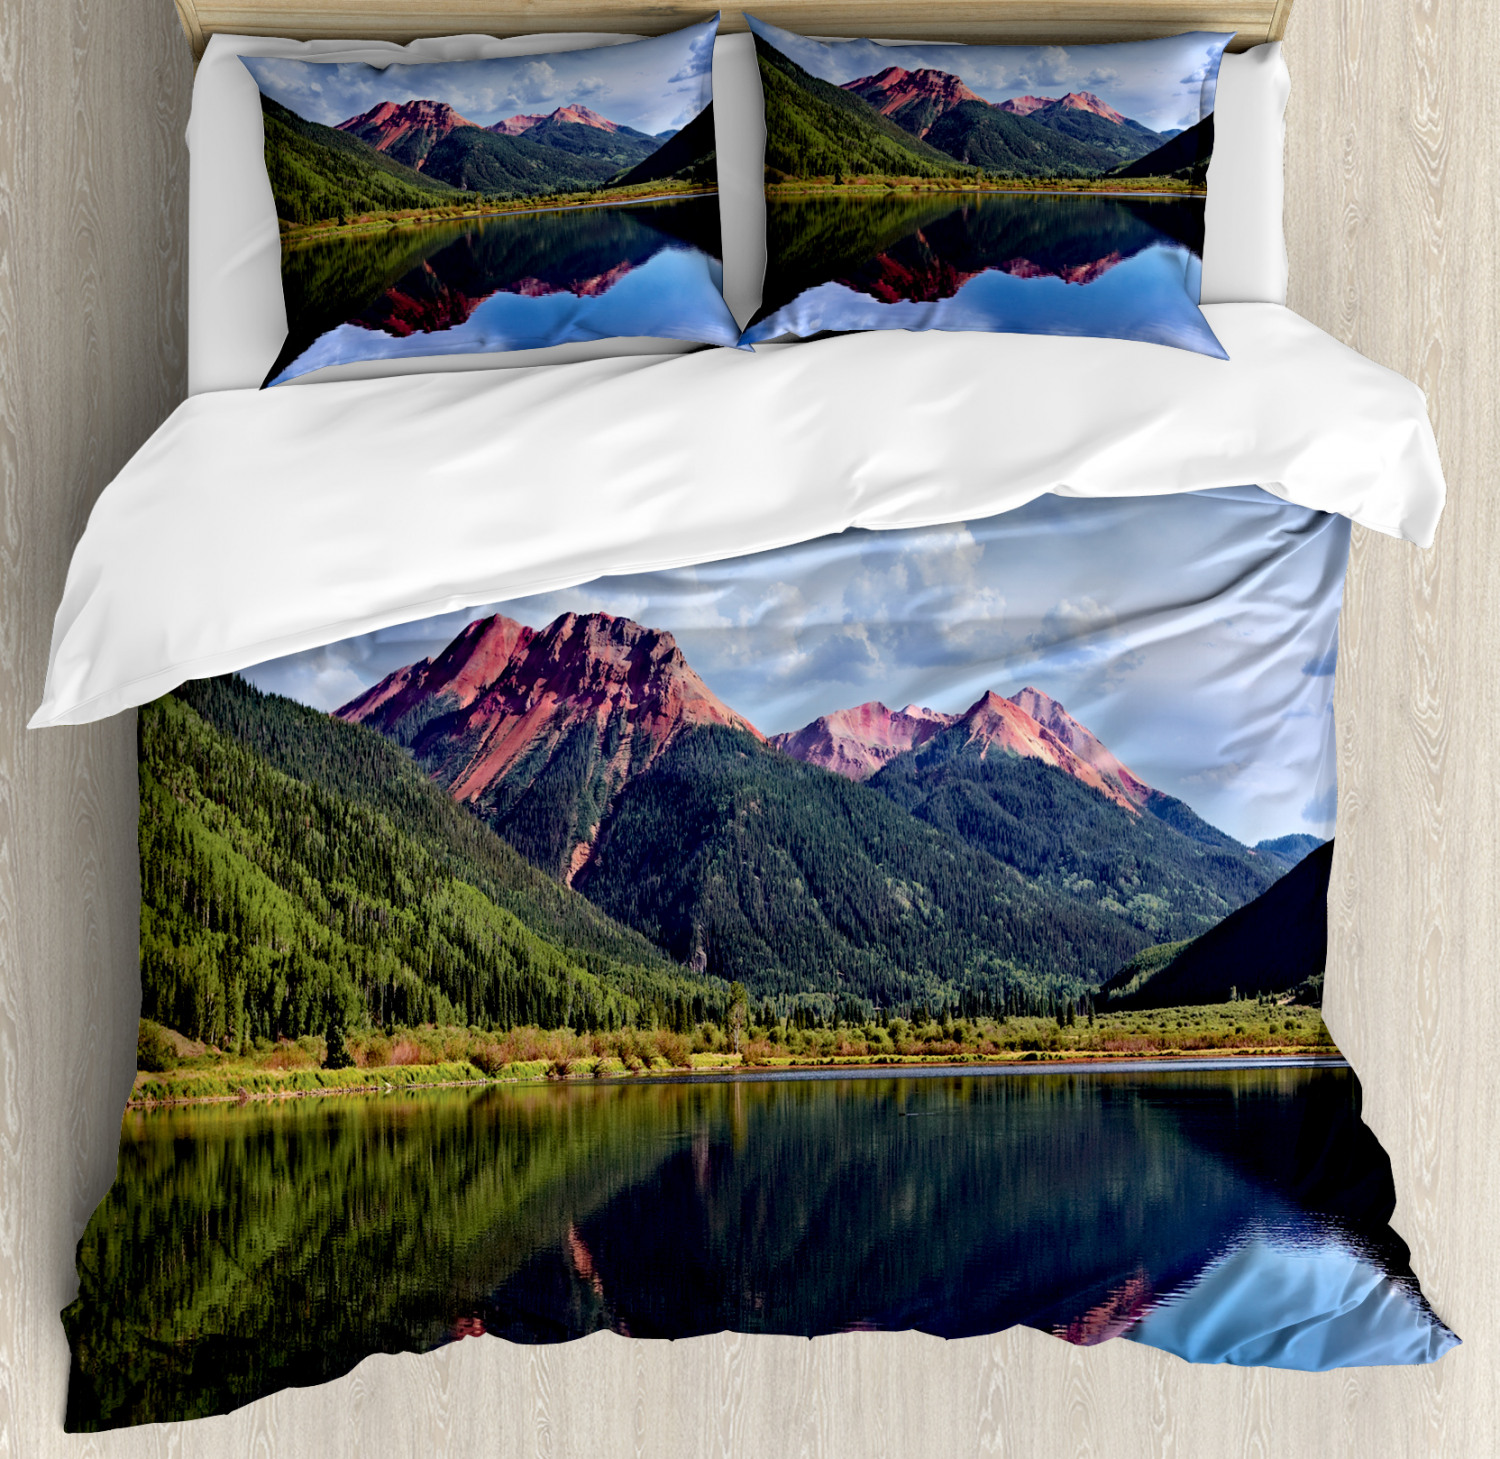 Nature Scene Duvet Cover Set Red Iron Peaks Over Calm